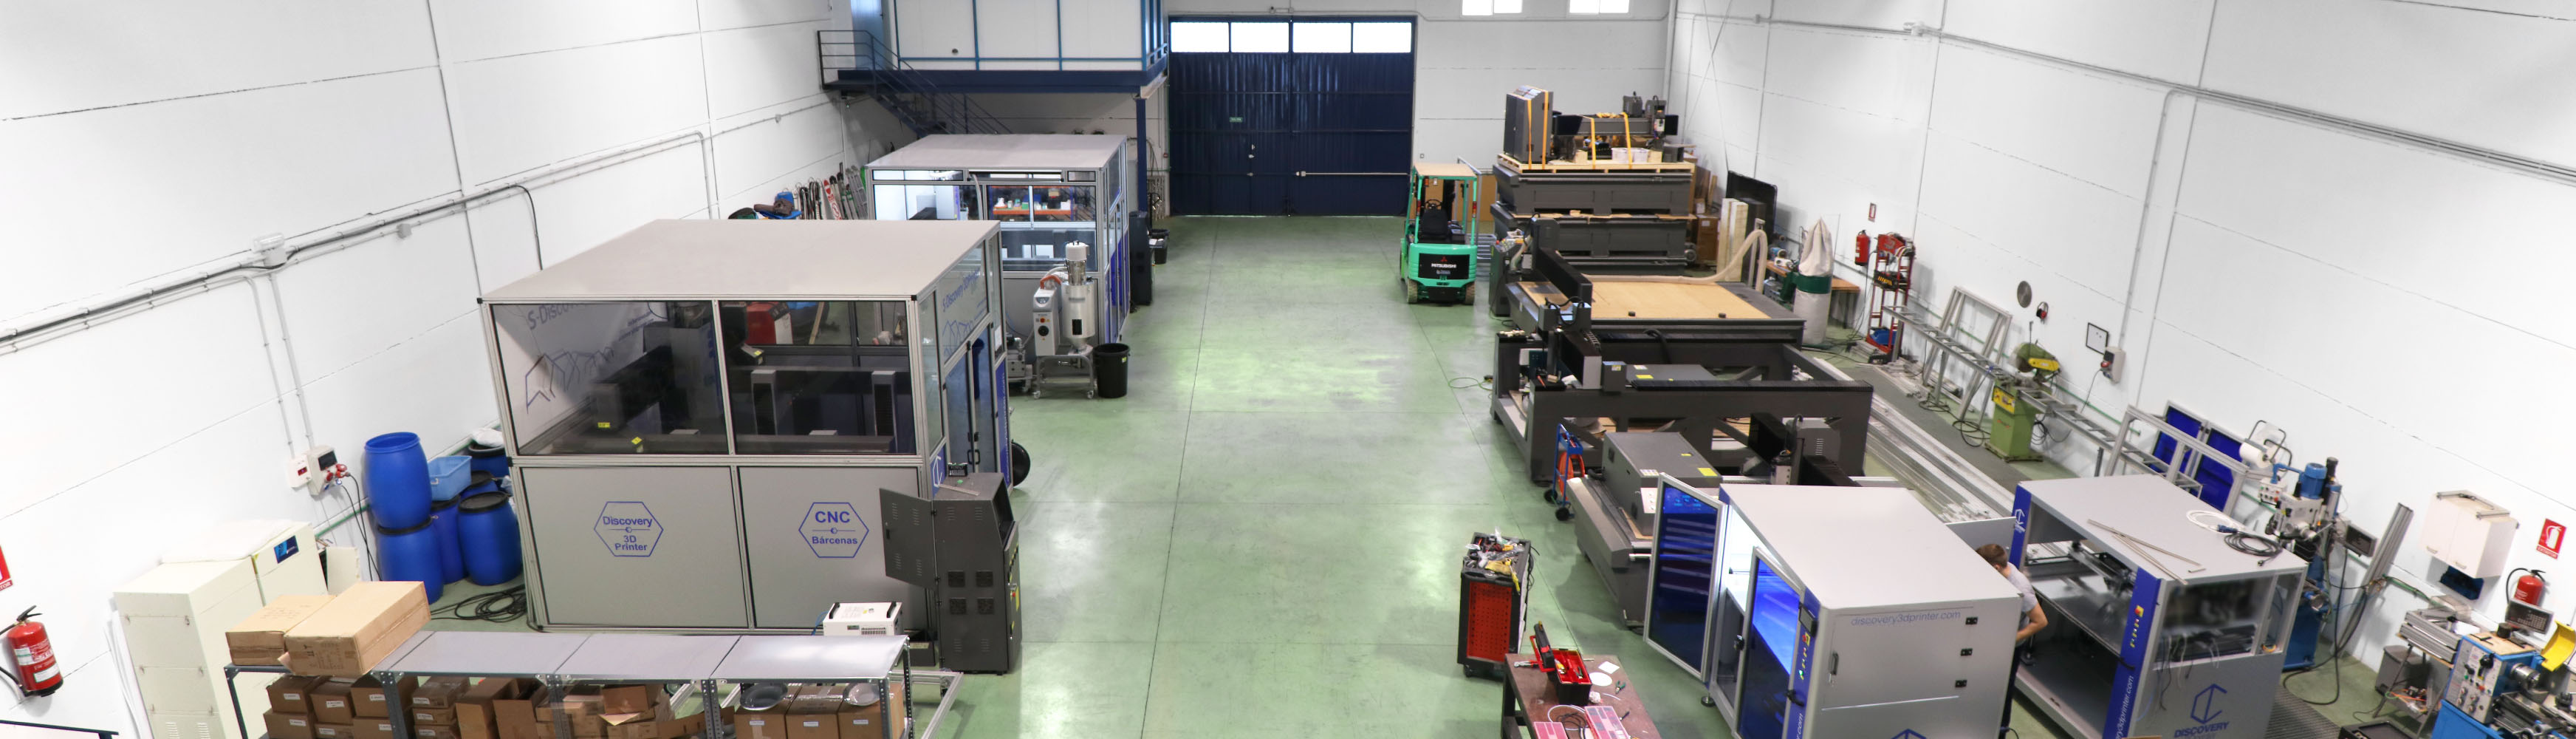 milling machine and co2 laser CNC made in spain